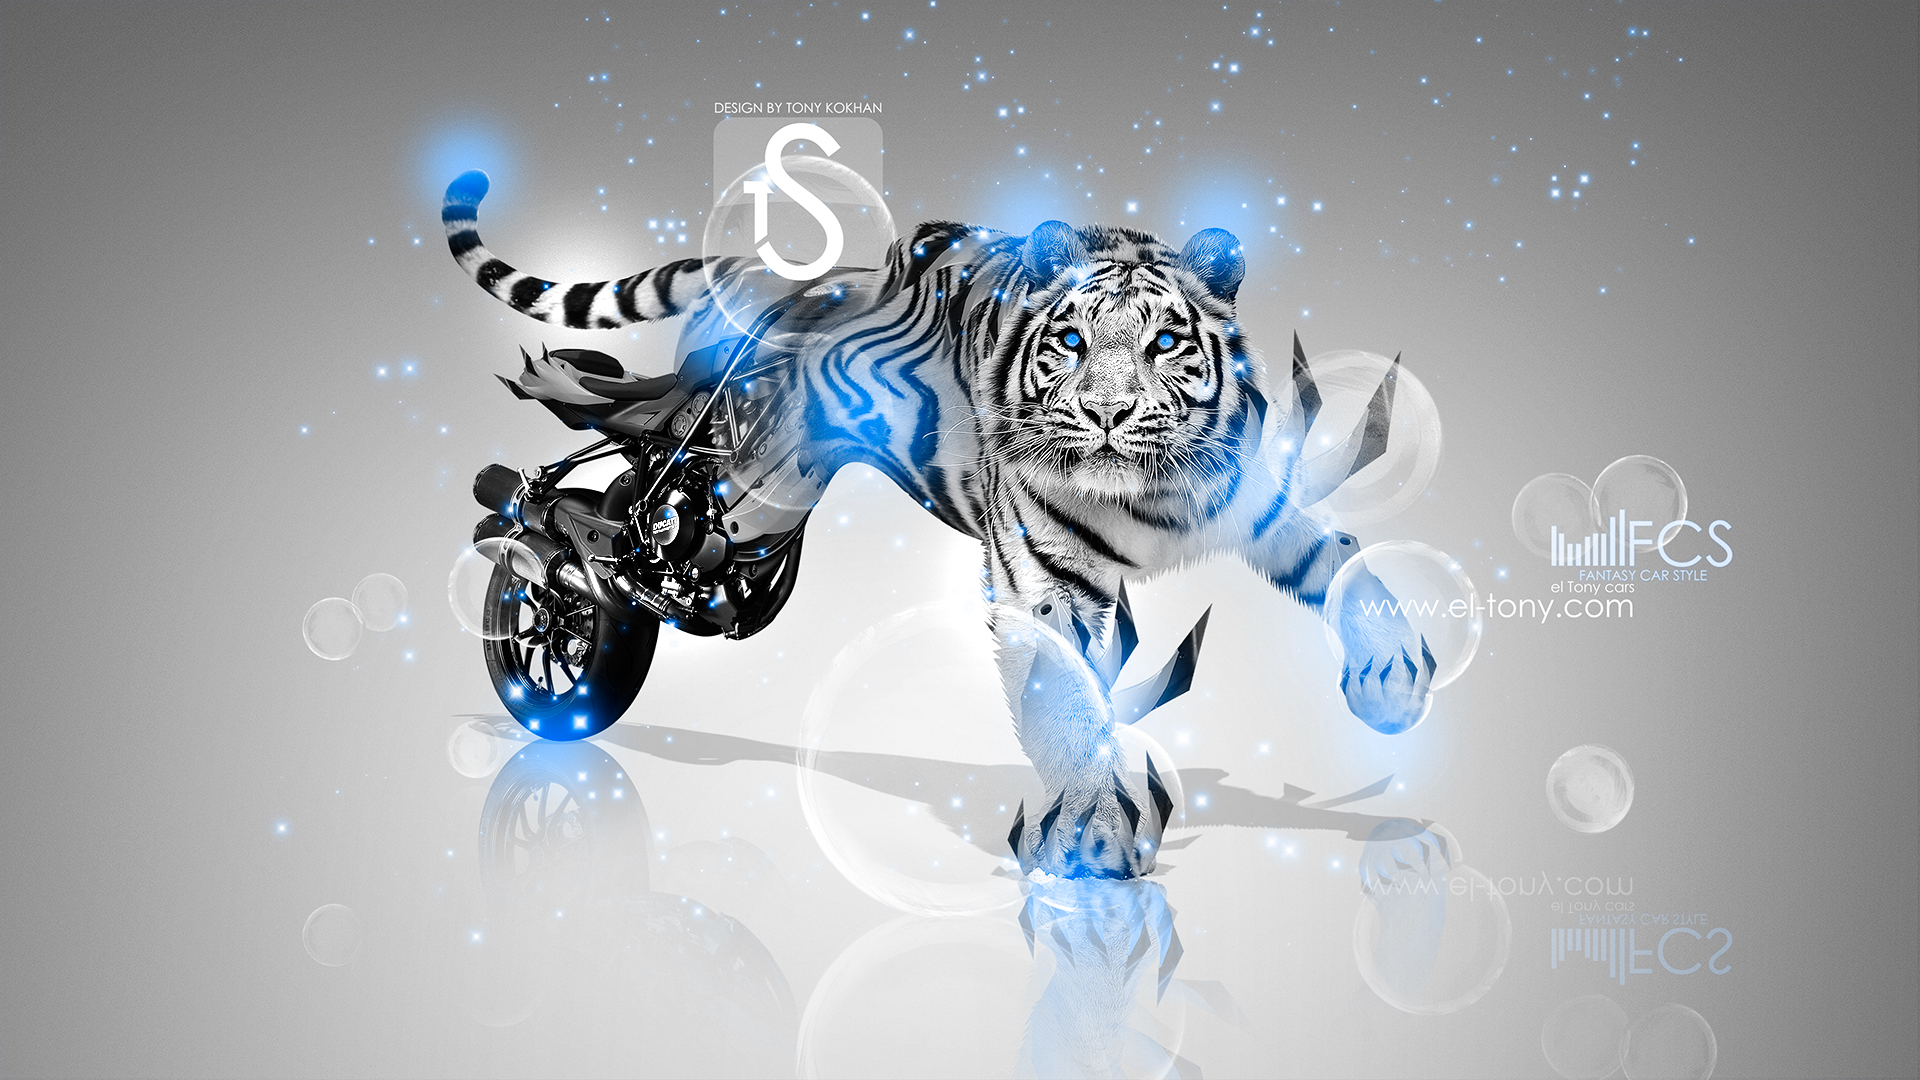 Superieur Moto Fantasy Tiger Ducati Streetfighter 848 Blue Neon  ...